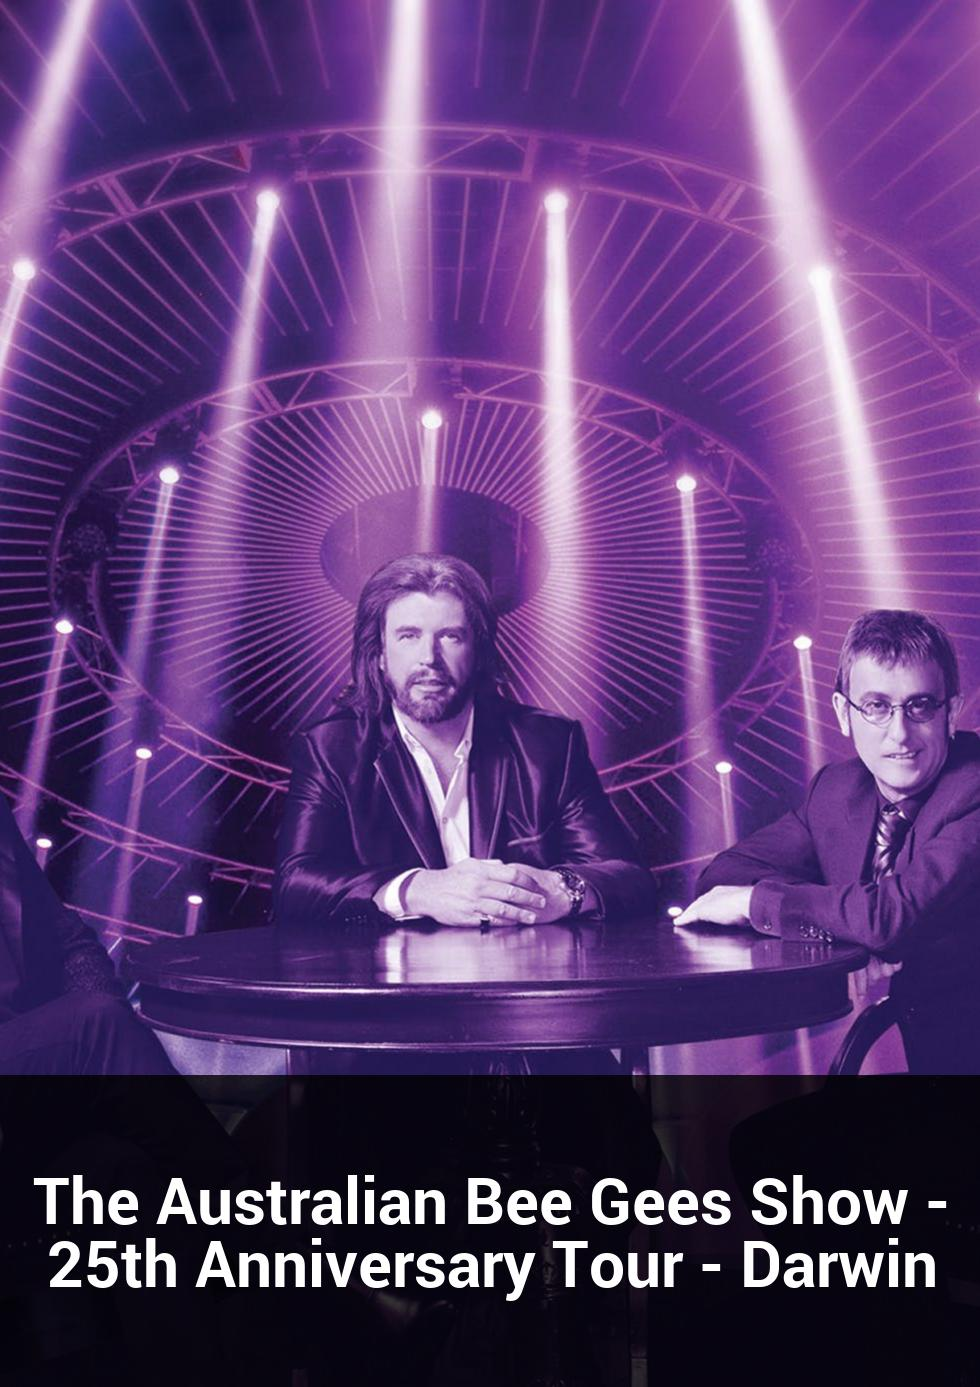 The Australian Bee Gees Show - 25th Anniversary Tour - Darwin at Darwin Entertainment Centre